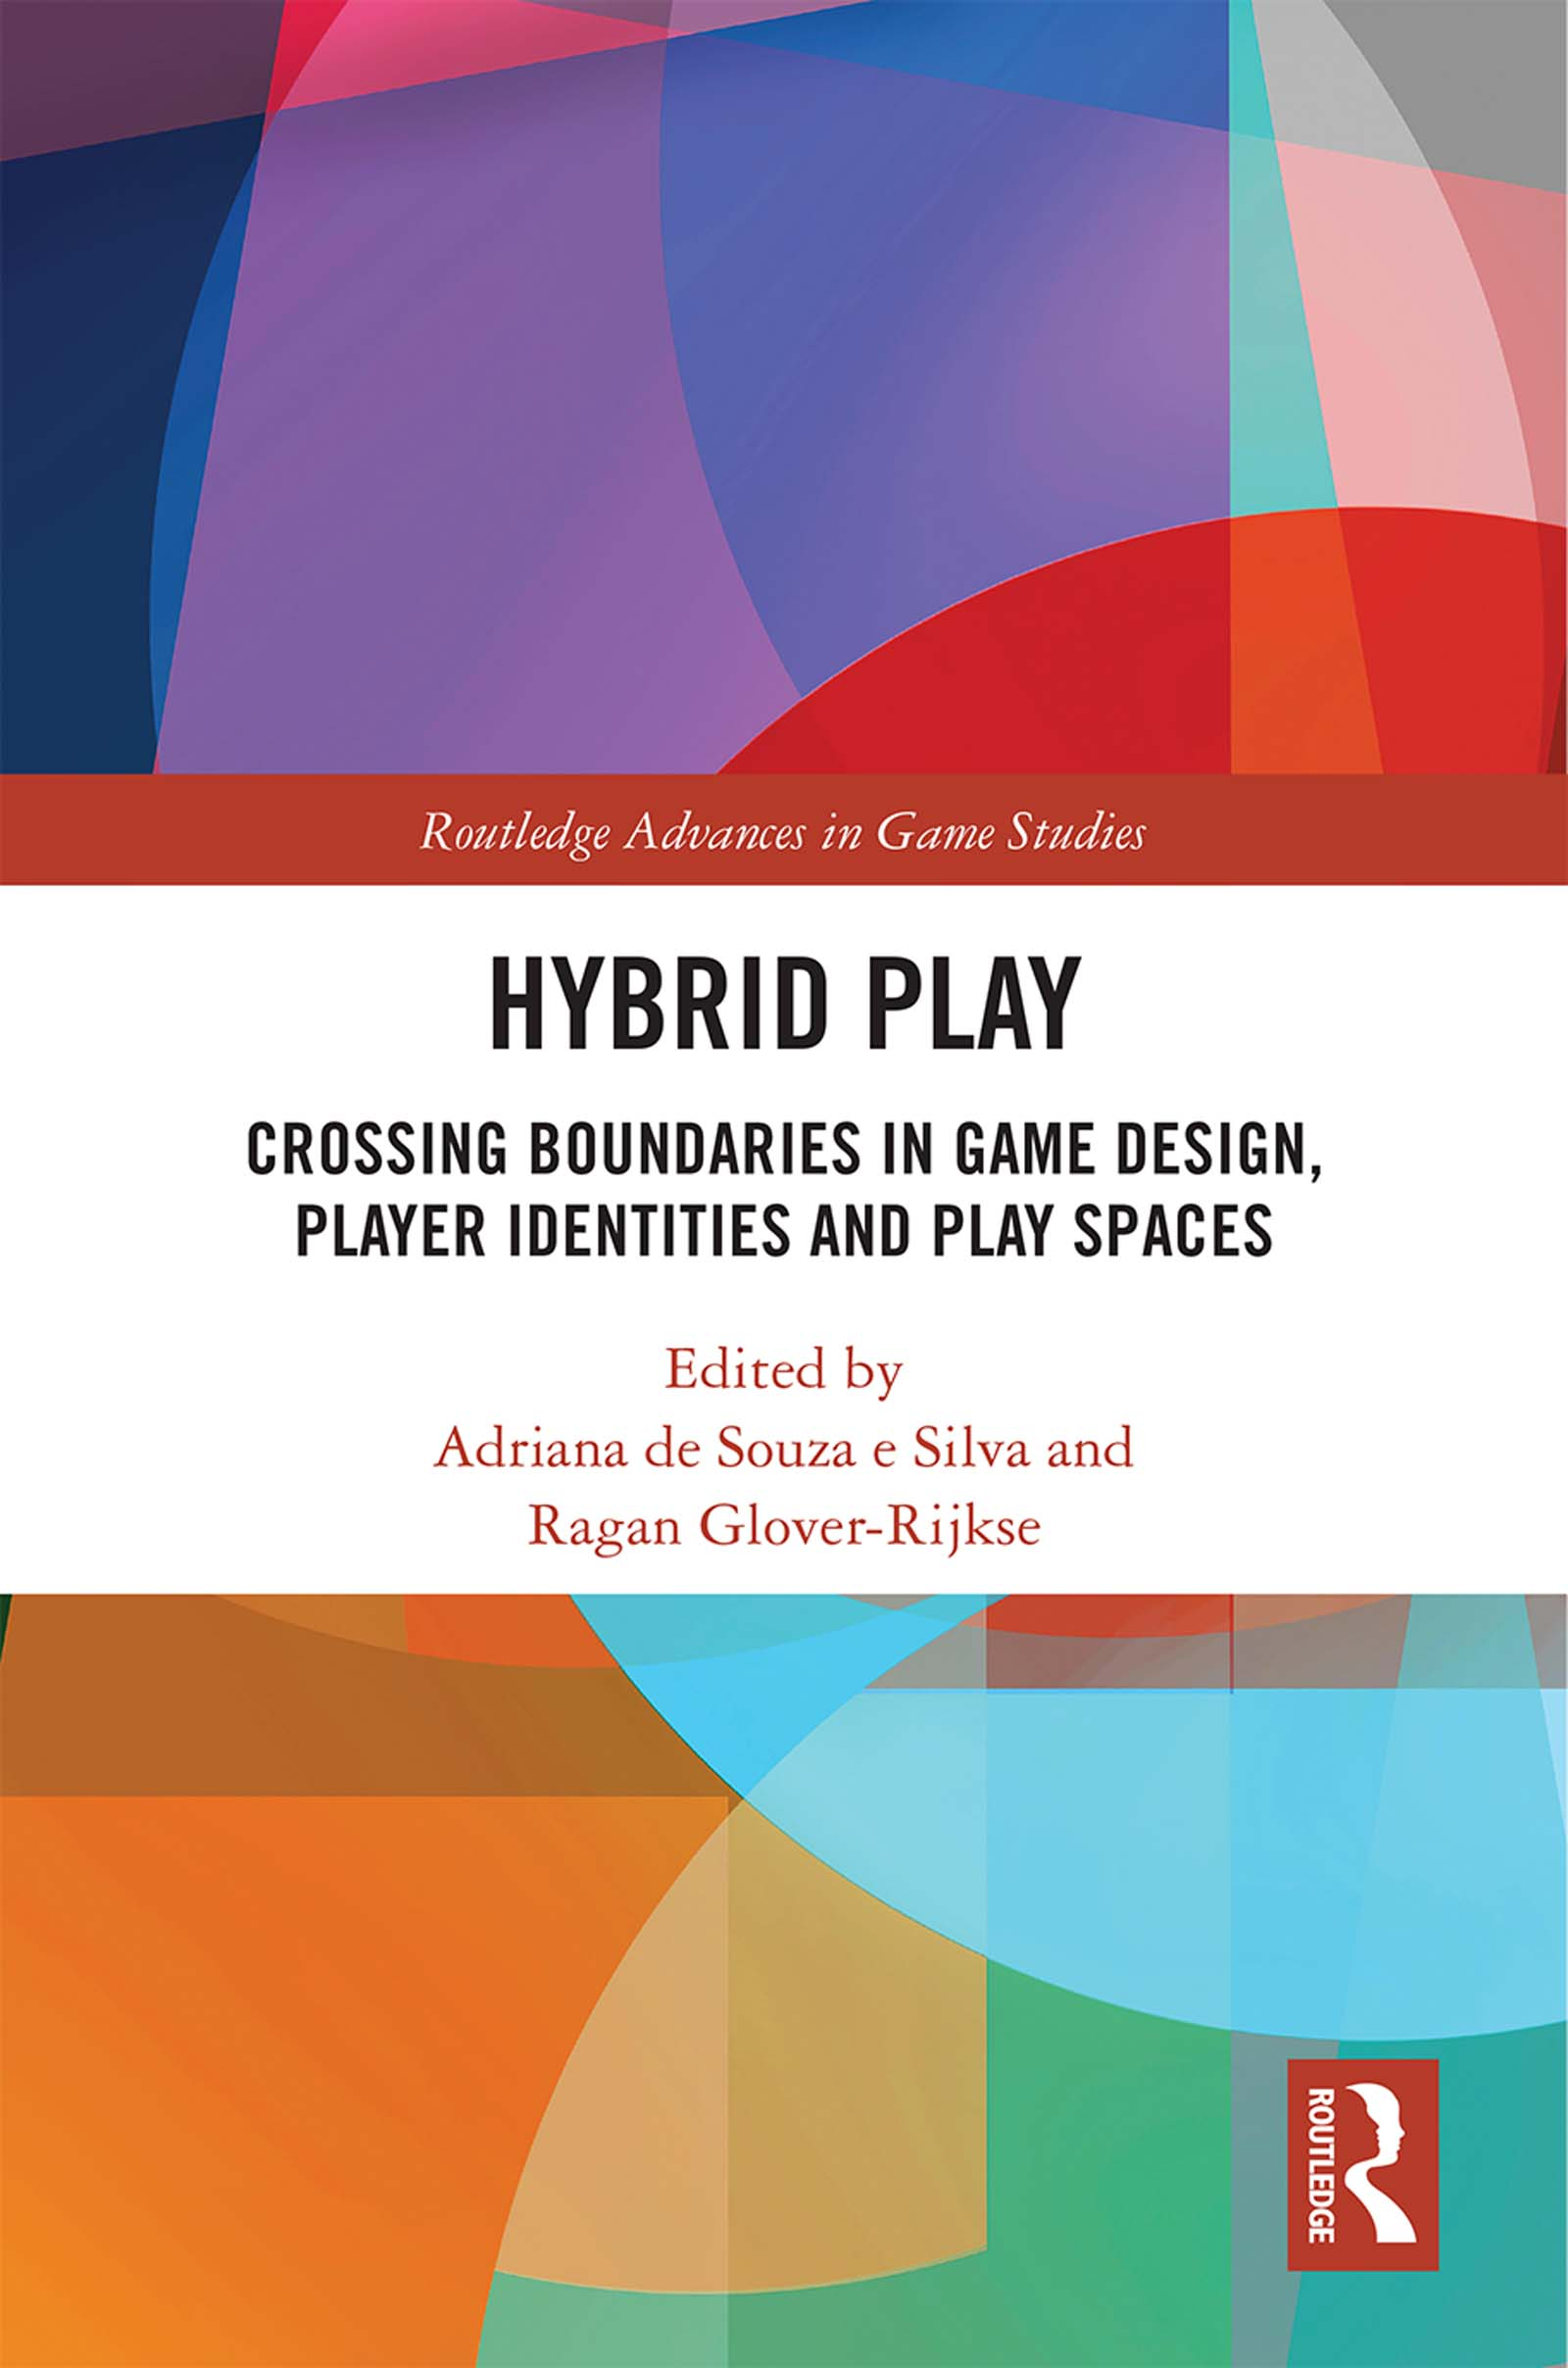 Hybrid Play: Crossing Boundaries in Game Design, Players Identities and Play Spaces book cover